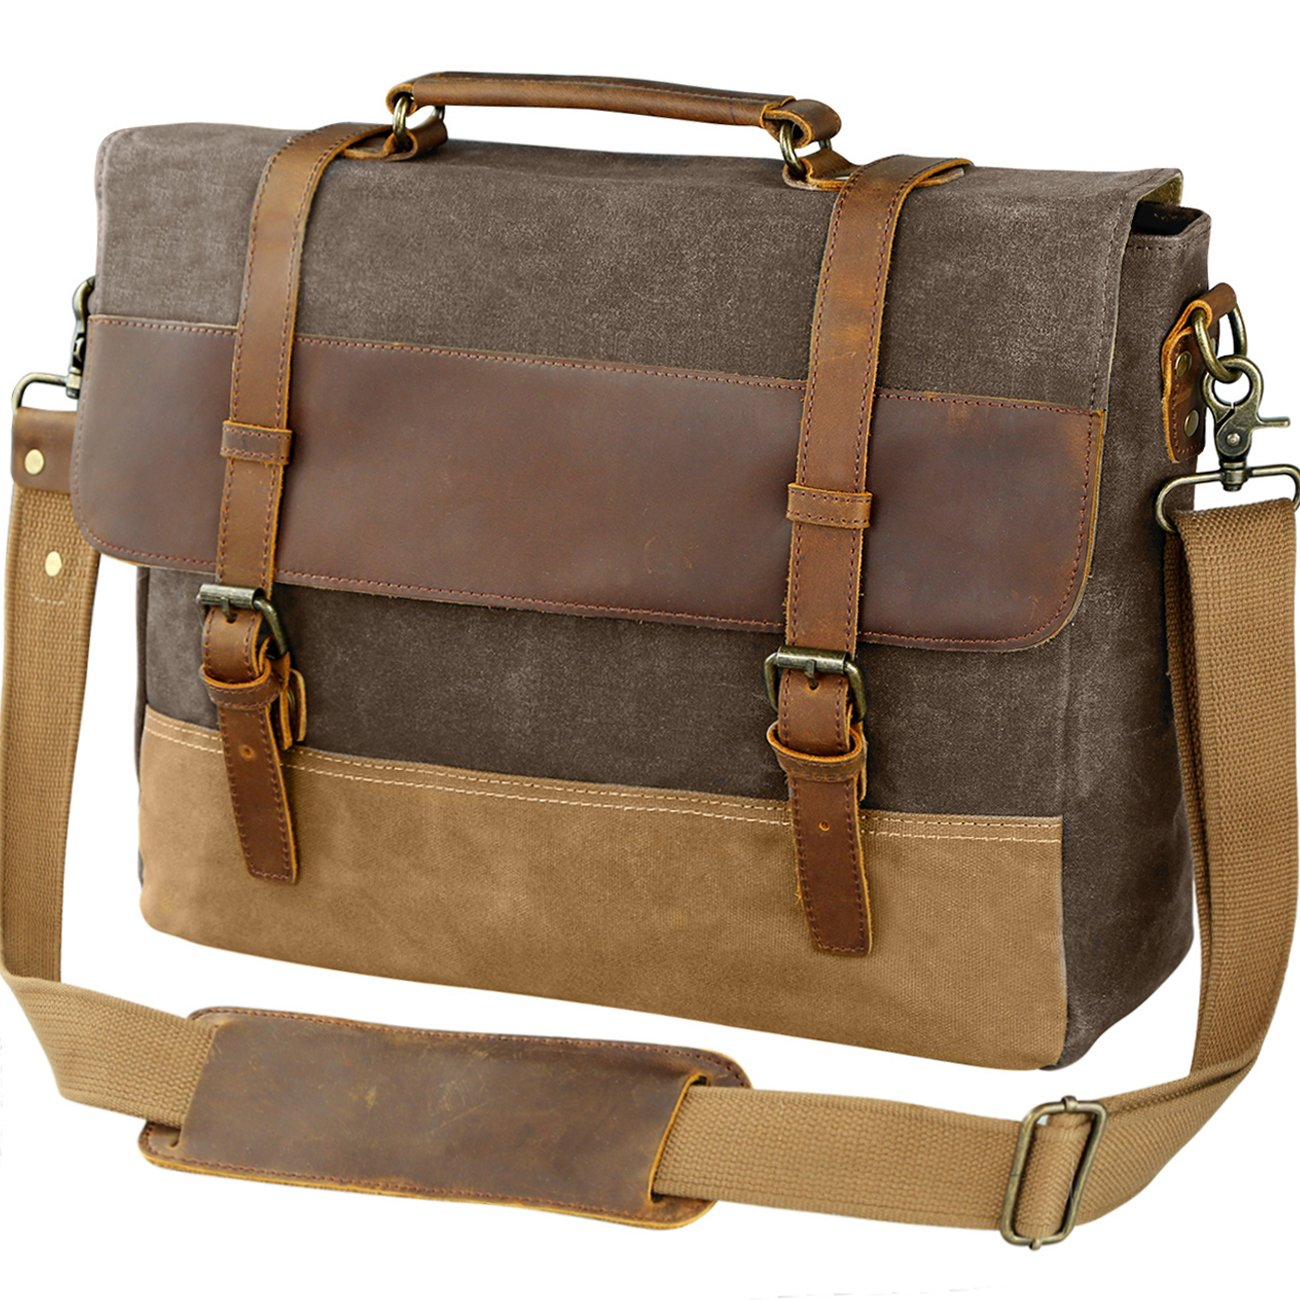 2aefe3e54 WOWBOX 15.6 Inch Messenger Bag for Mens Waxed Waterproof Canvas ...